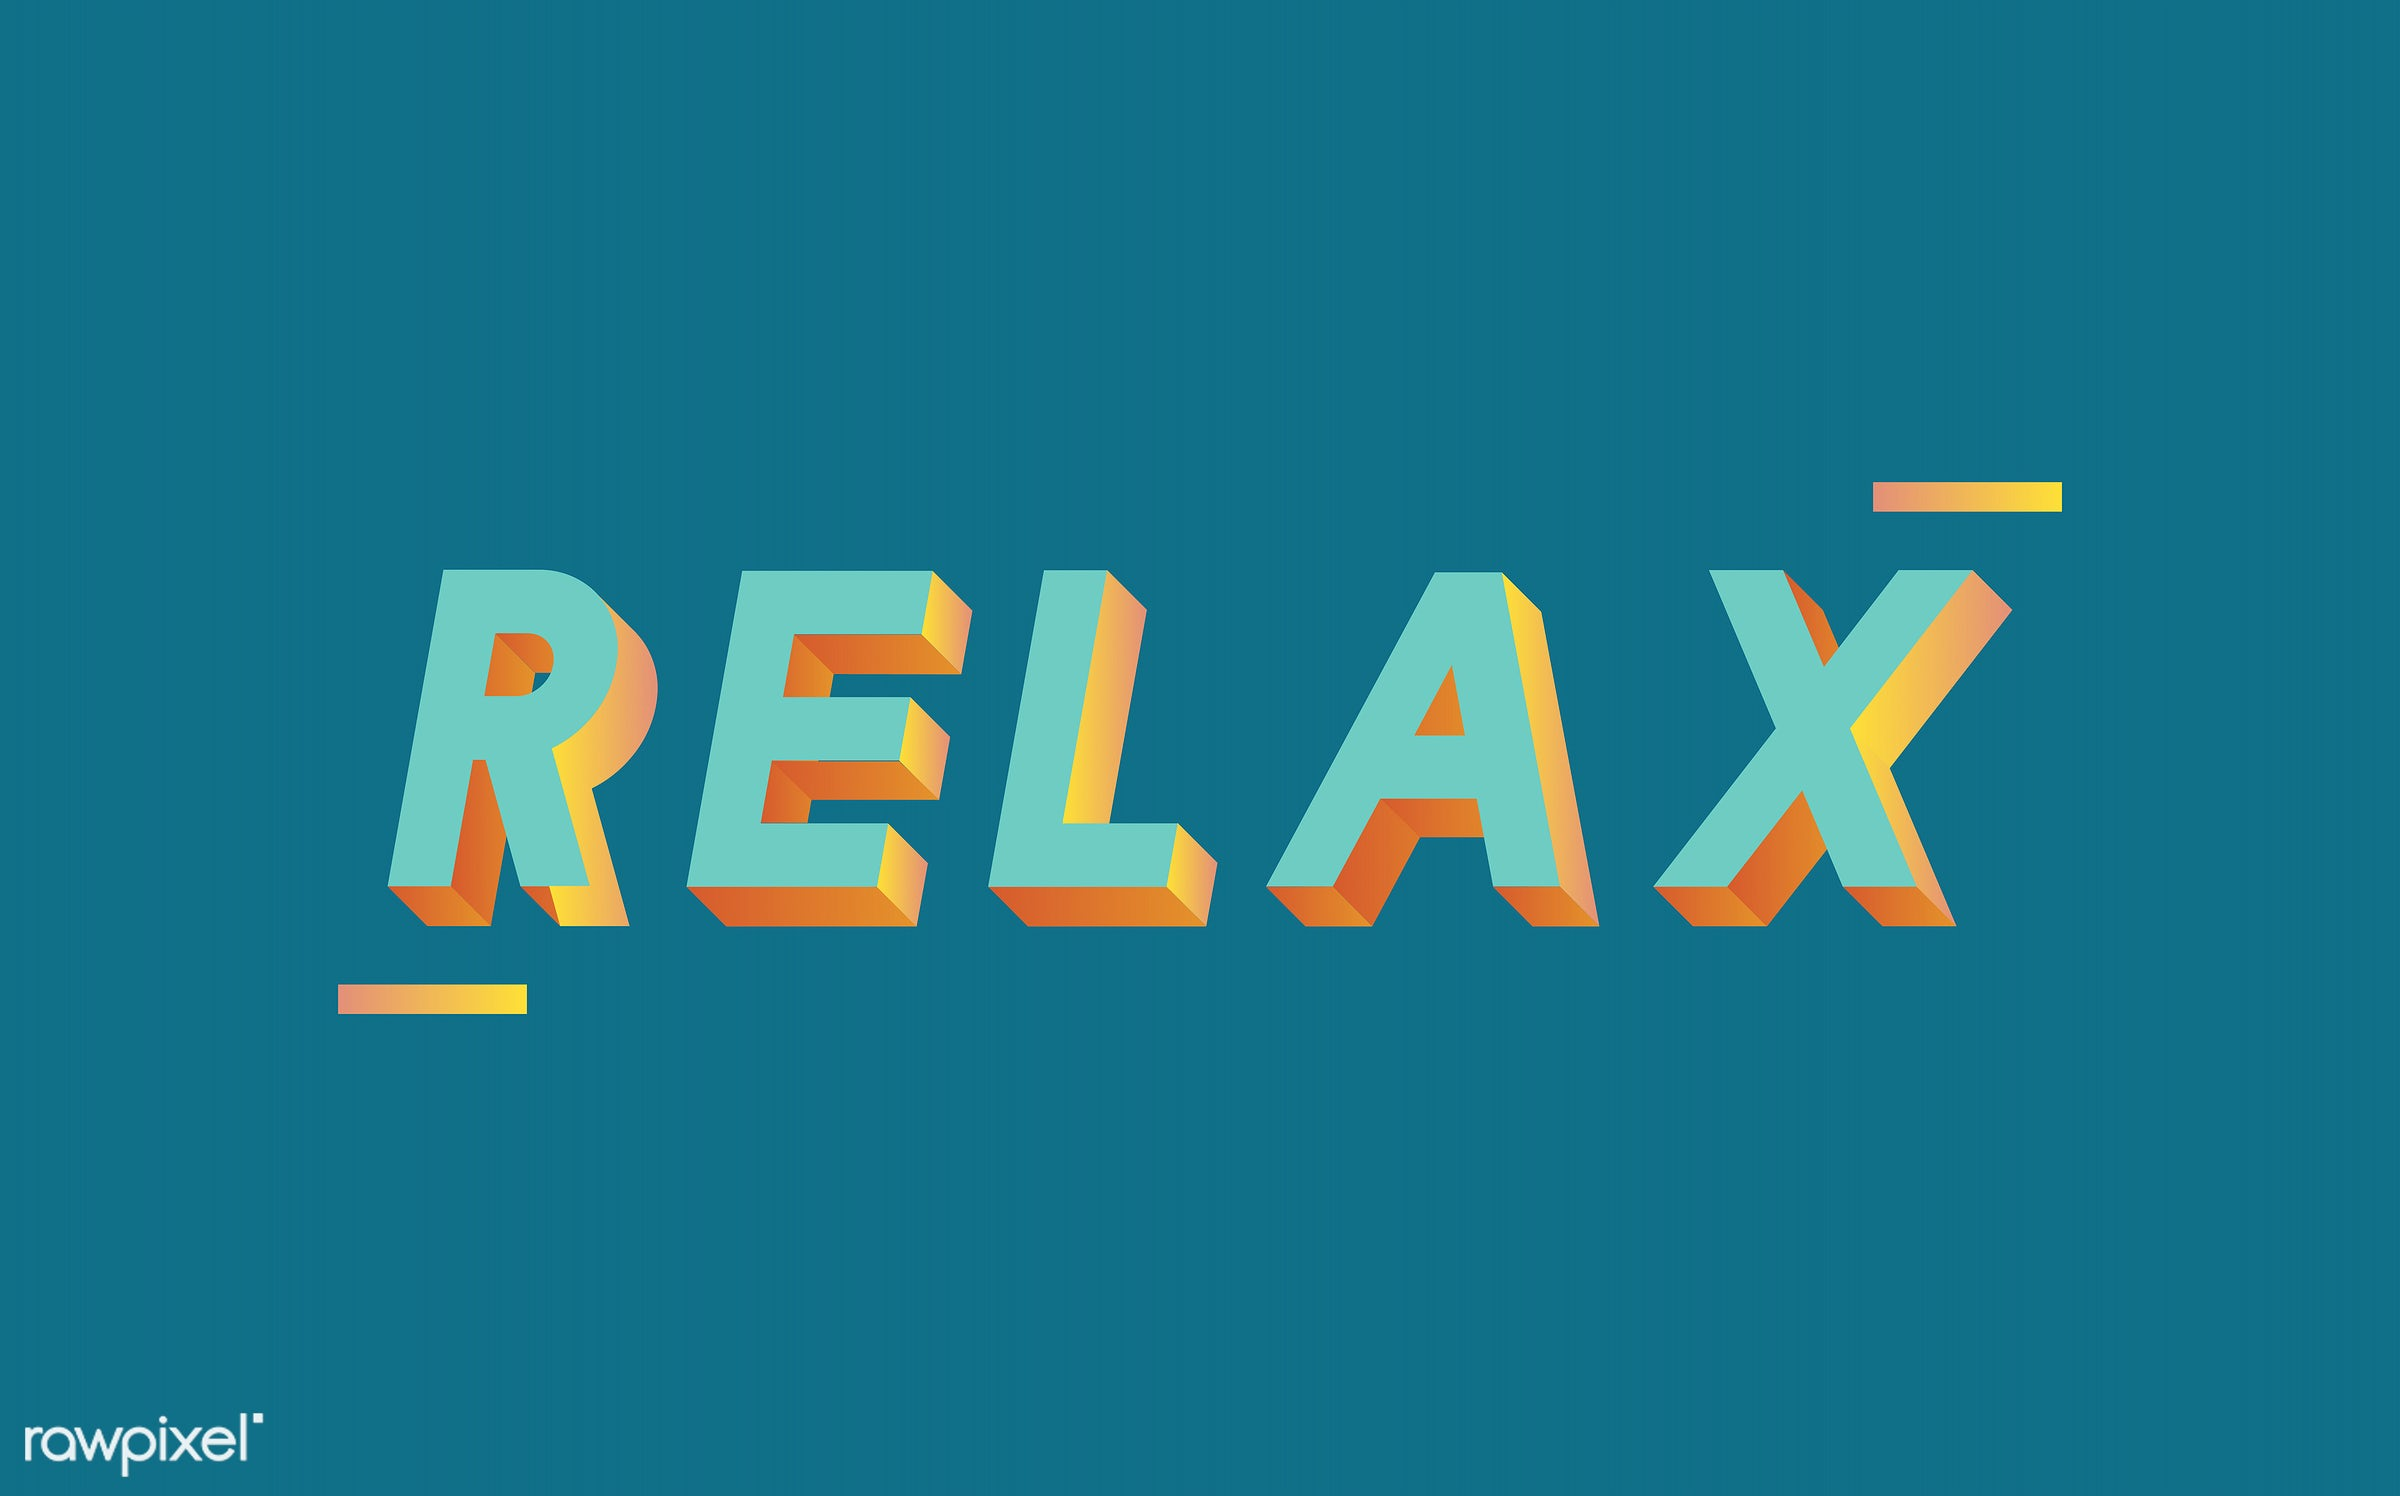 neon, colorful, 3d, three dimensional, vector, illustration, graphic, word, green, relax, relaxation, relaxing